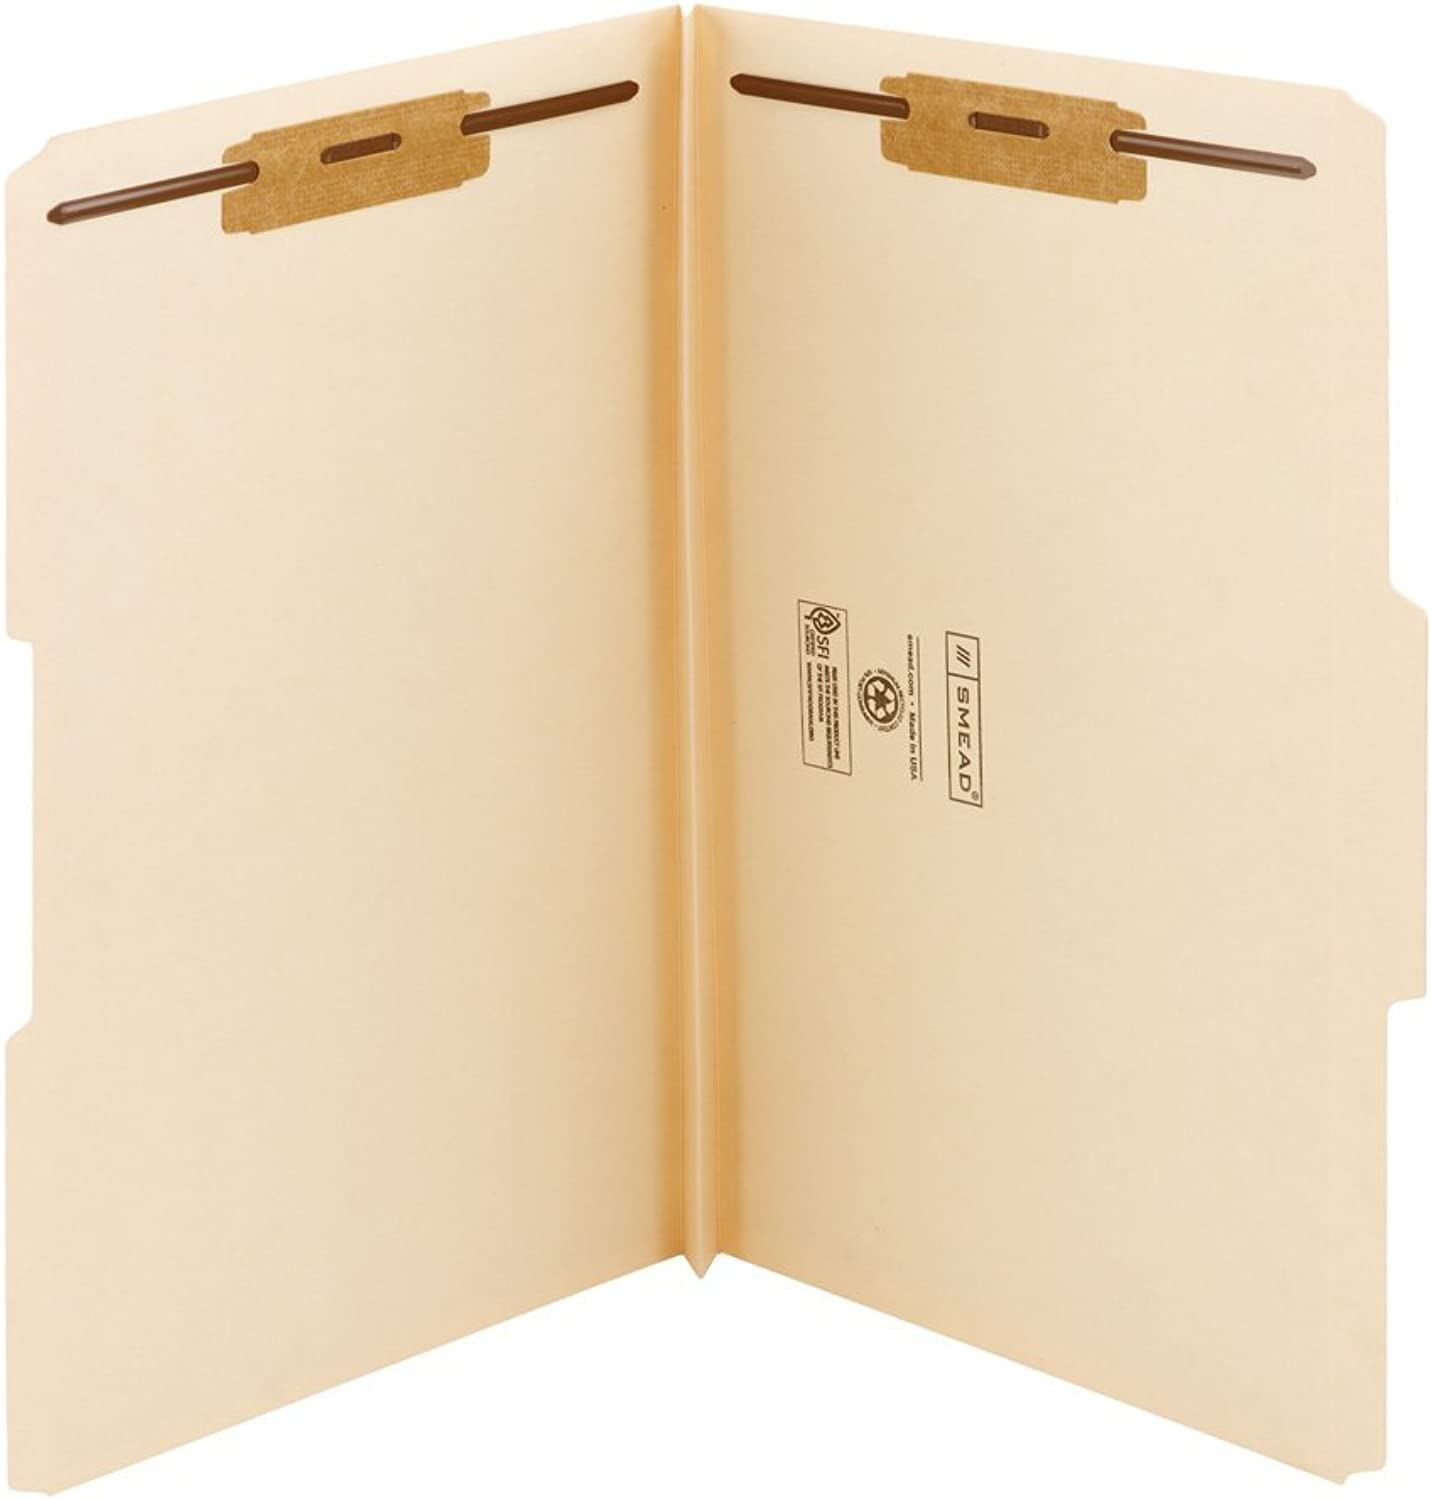 1 1 2 Inch Expansion Folders, Two Fasteners, 1 3 Top Tab, Legal, Manila, 50 Box